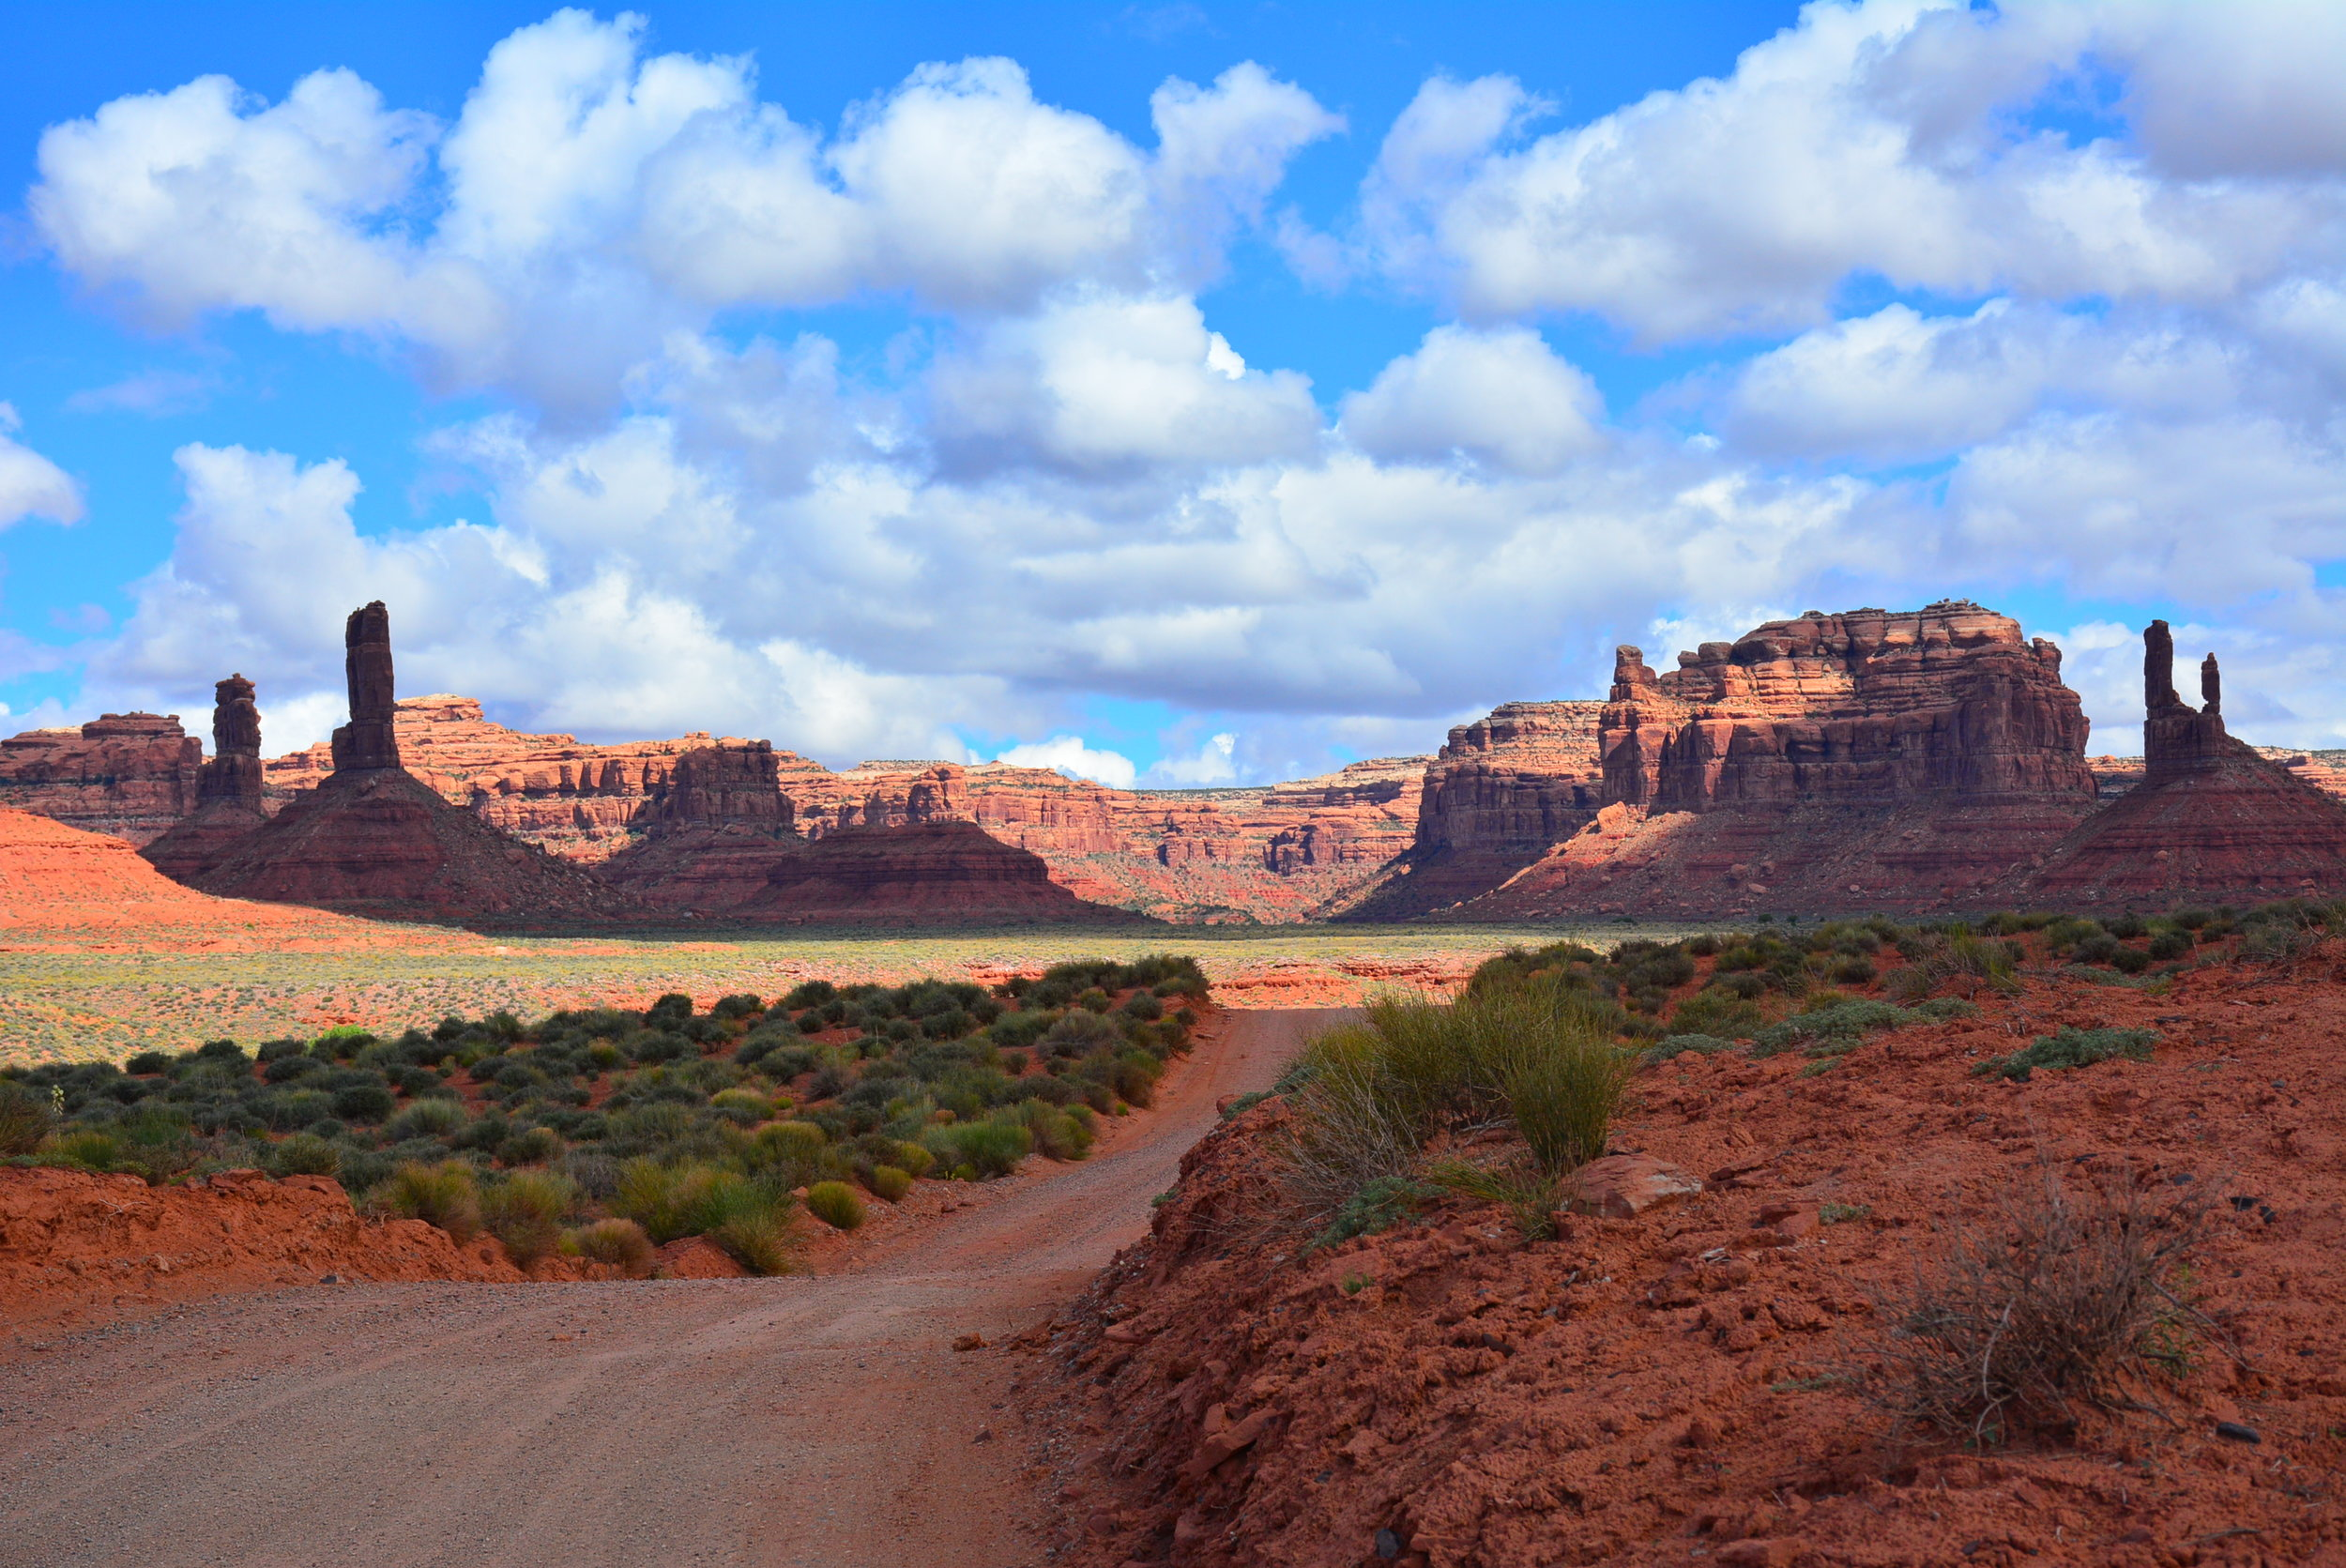 Driving the 17 miles through Valley of the Gods